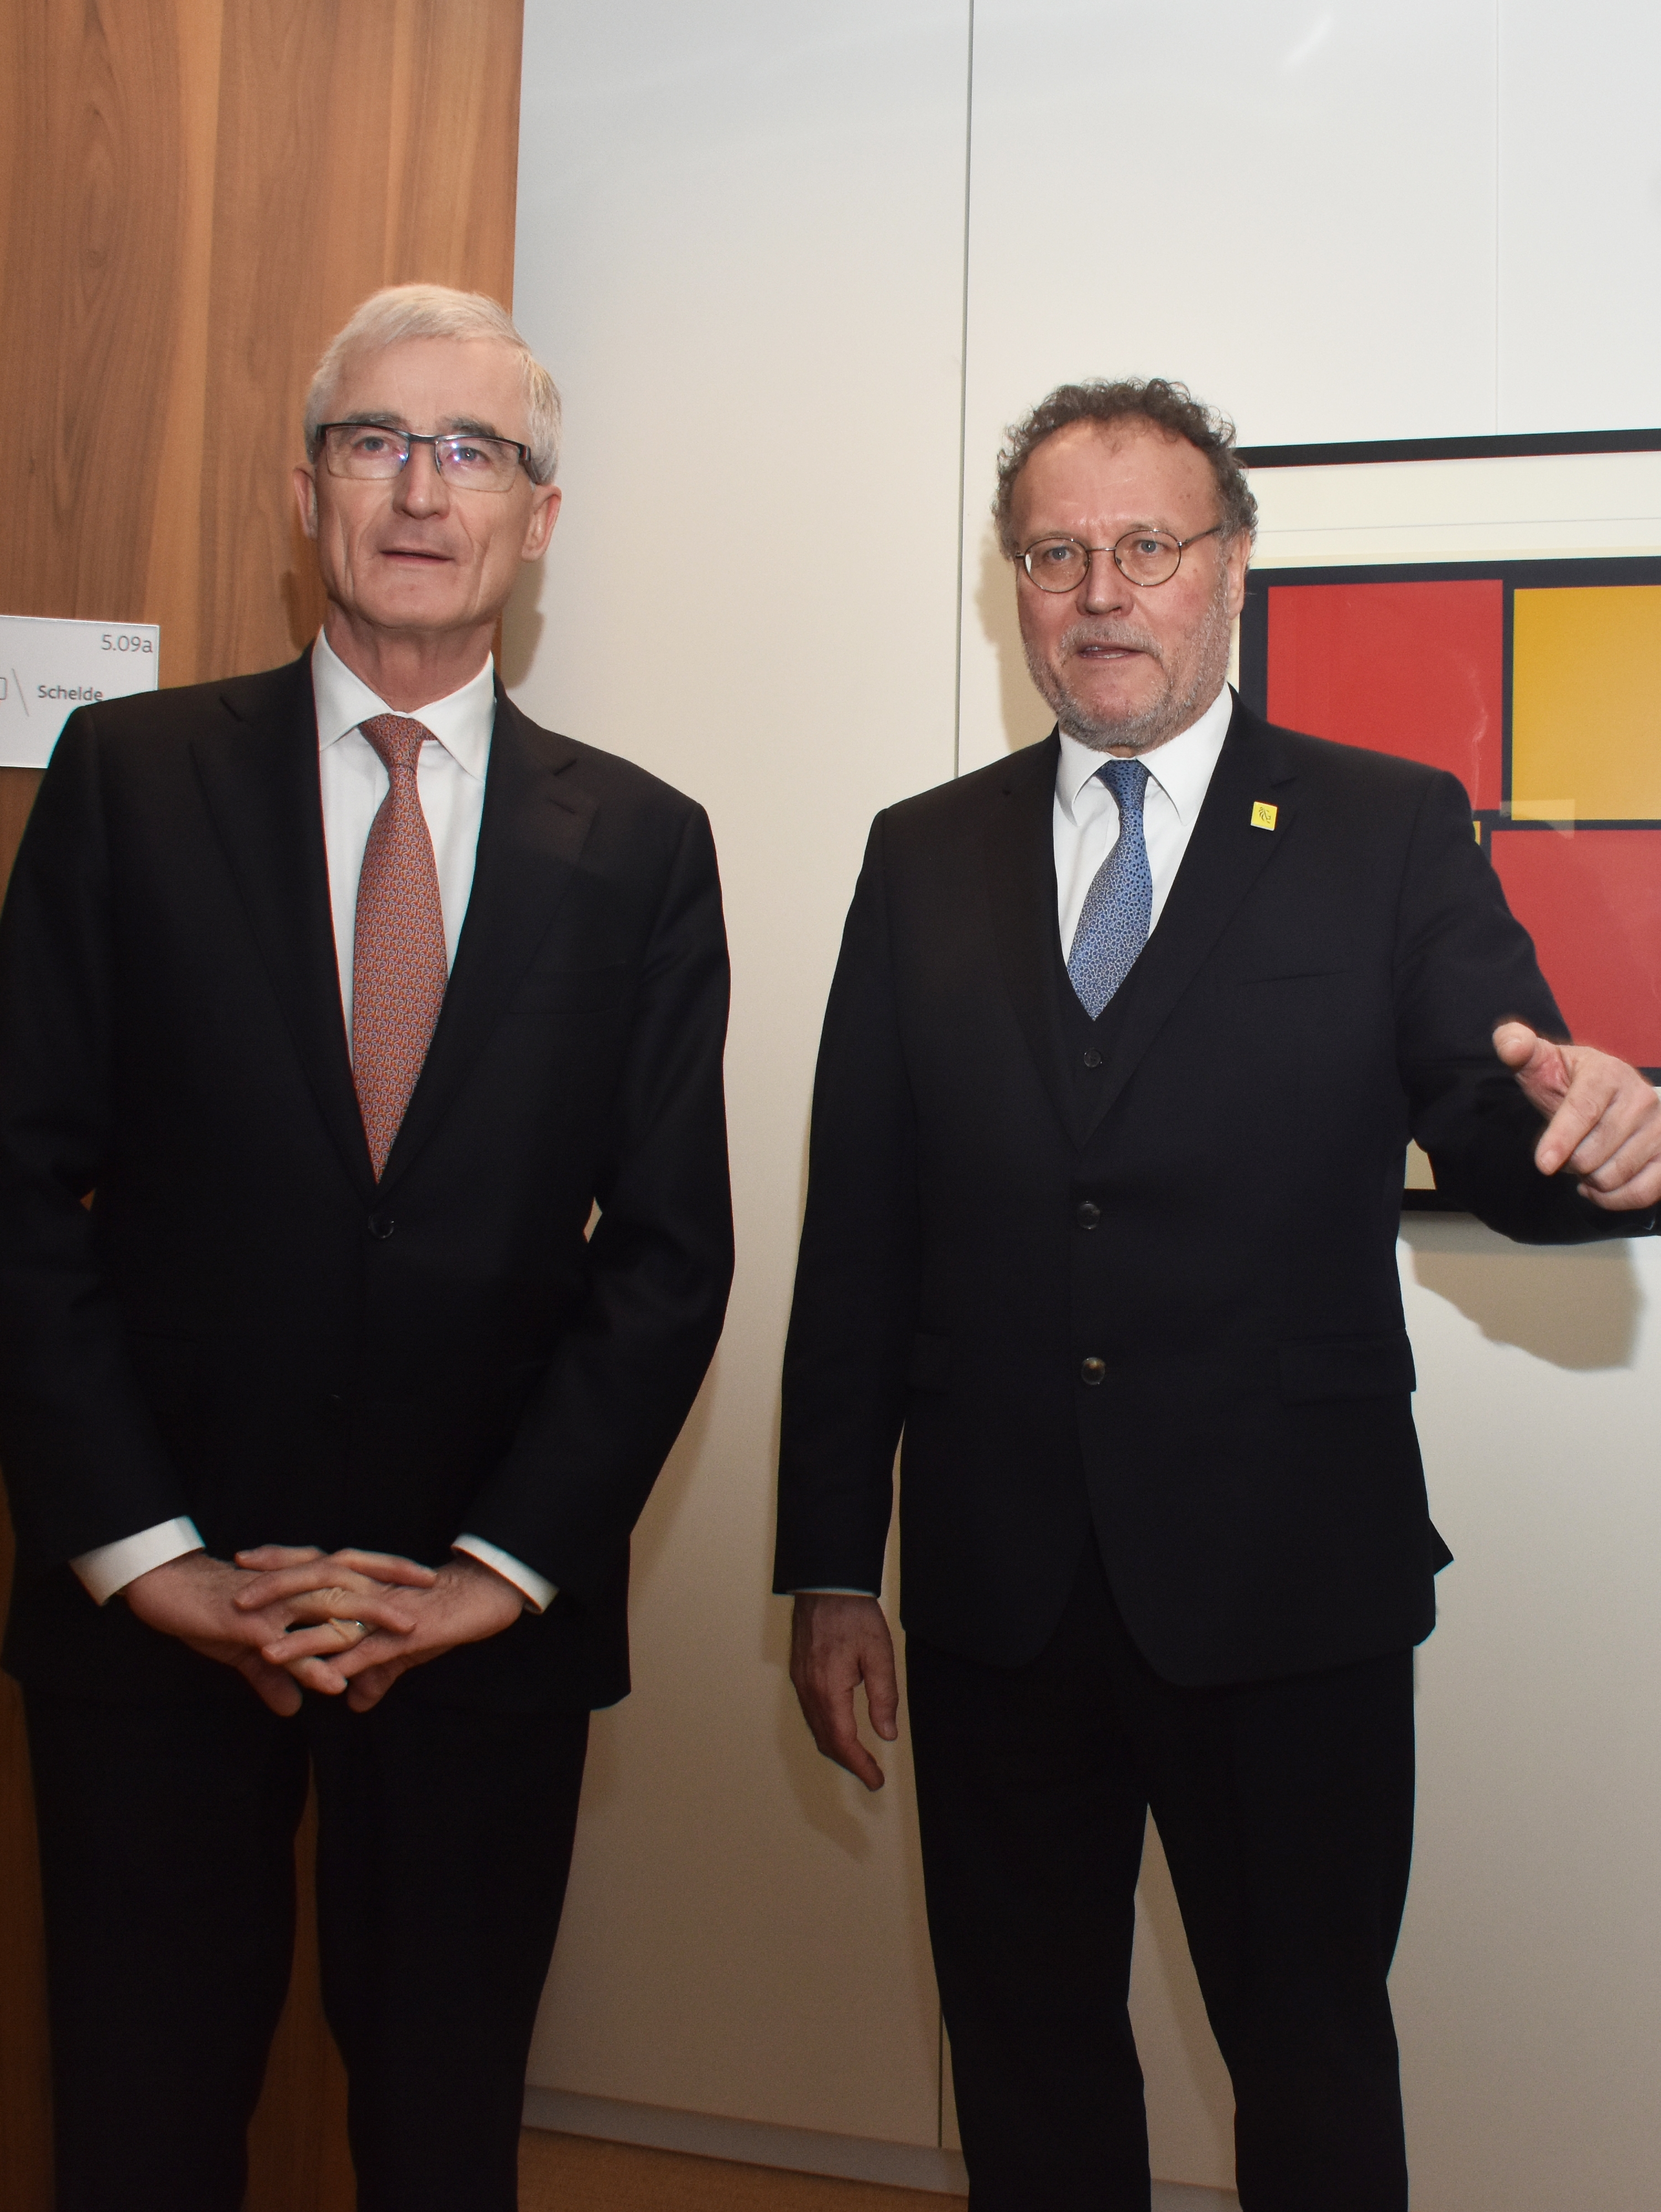 Minister-president Bourgeois and representative Axel Buyse